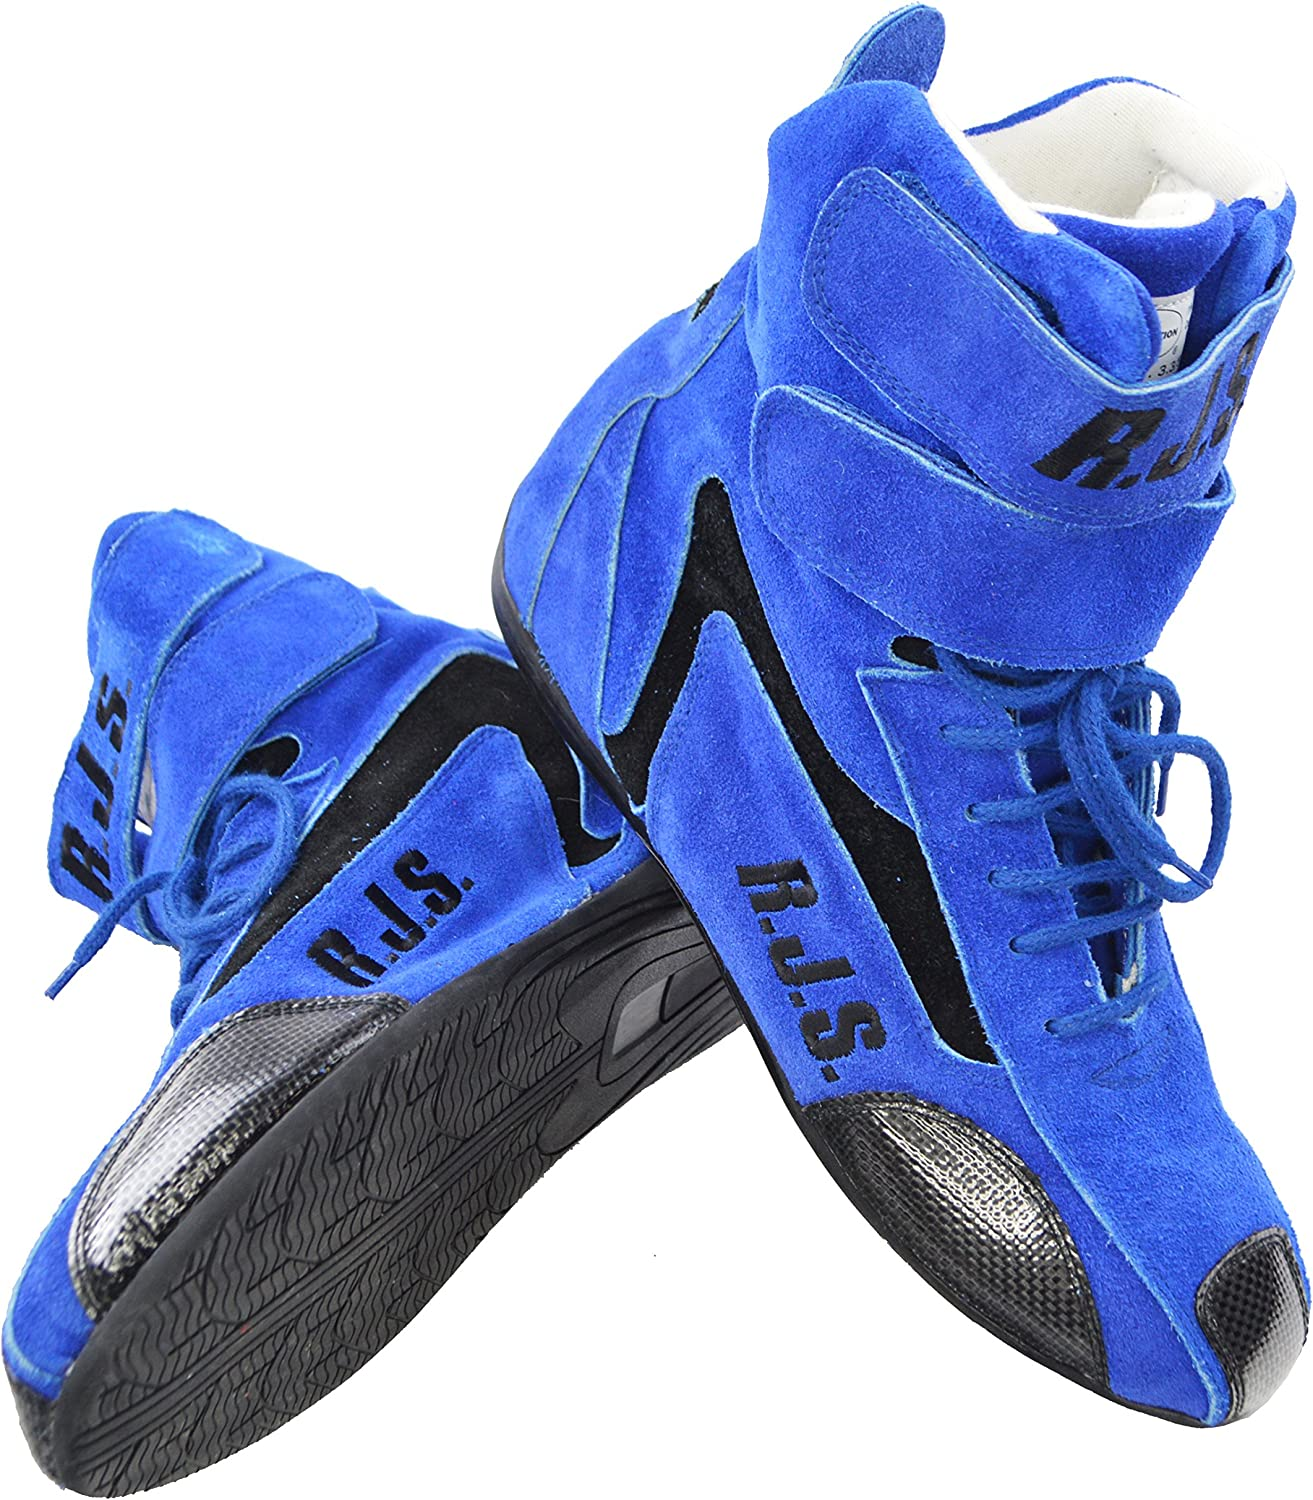 RACERDIRECT.NET RJS Racing Safety Equipment Blue HI TOP Shoes Boots SFI 3.3//5 US Mens Size 8 Womens Size 10